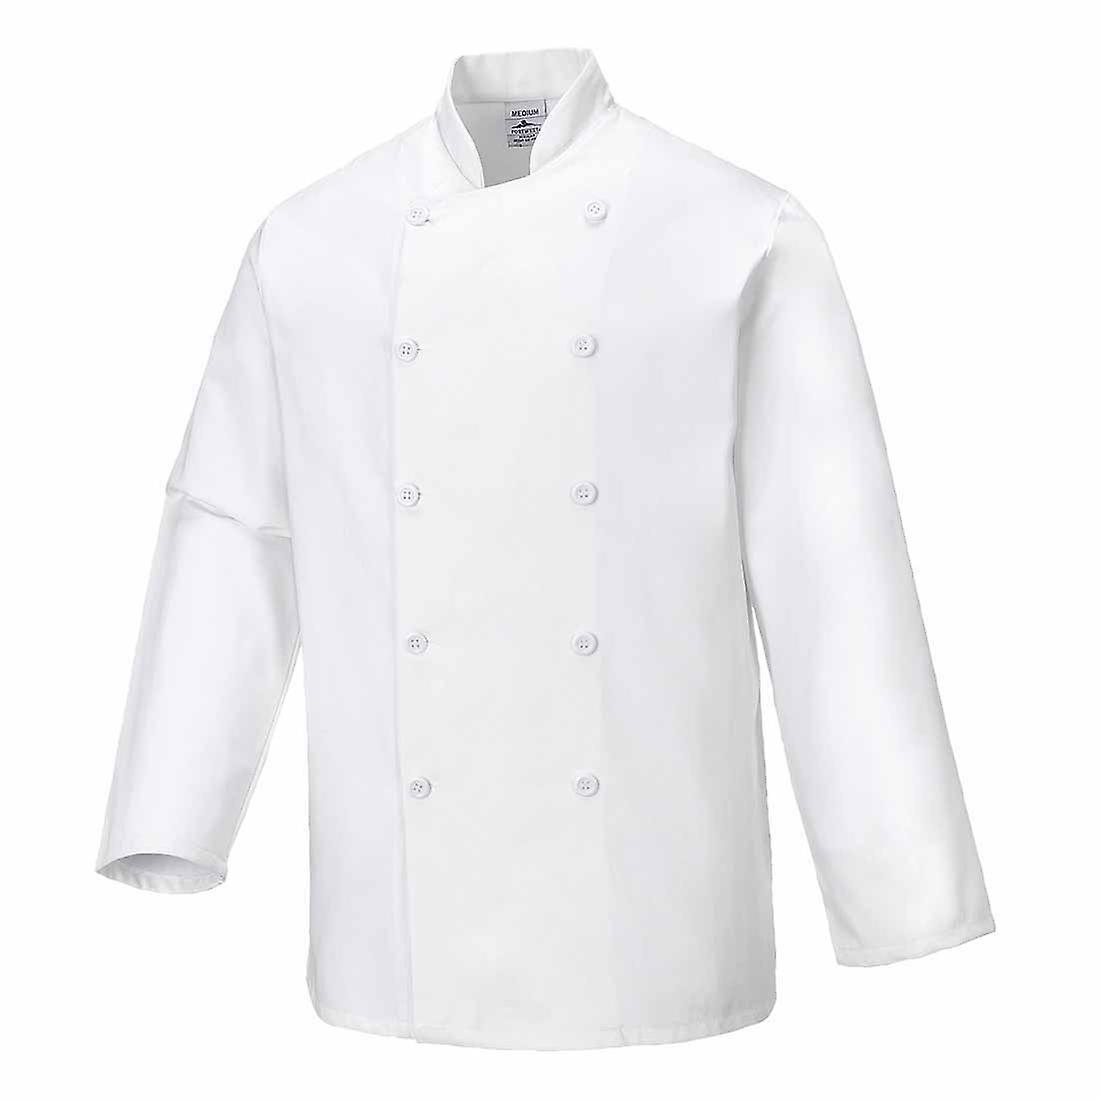 sUw - Sussex Chefs Kitchen Workwear Jacket